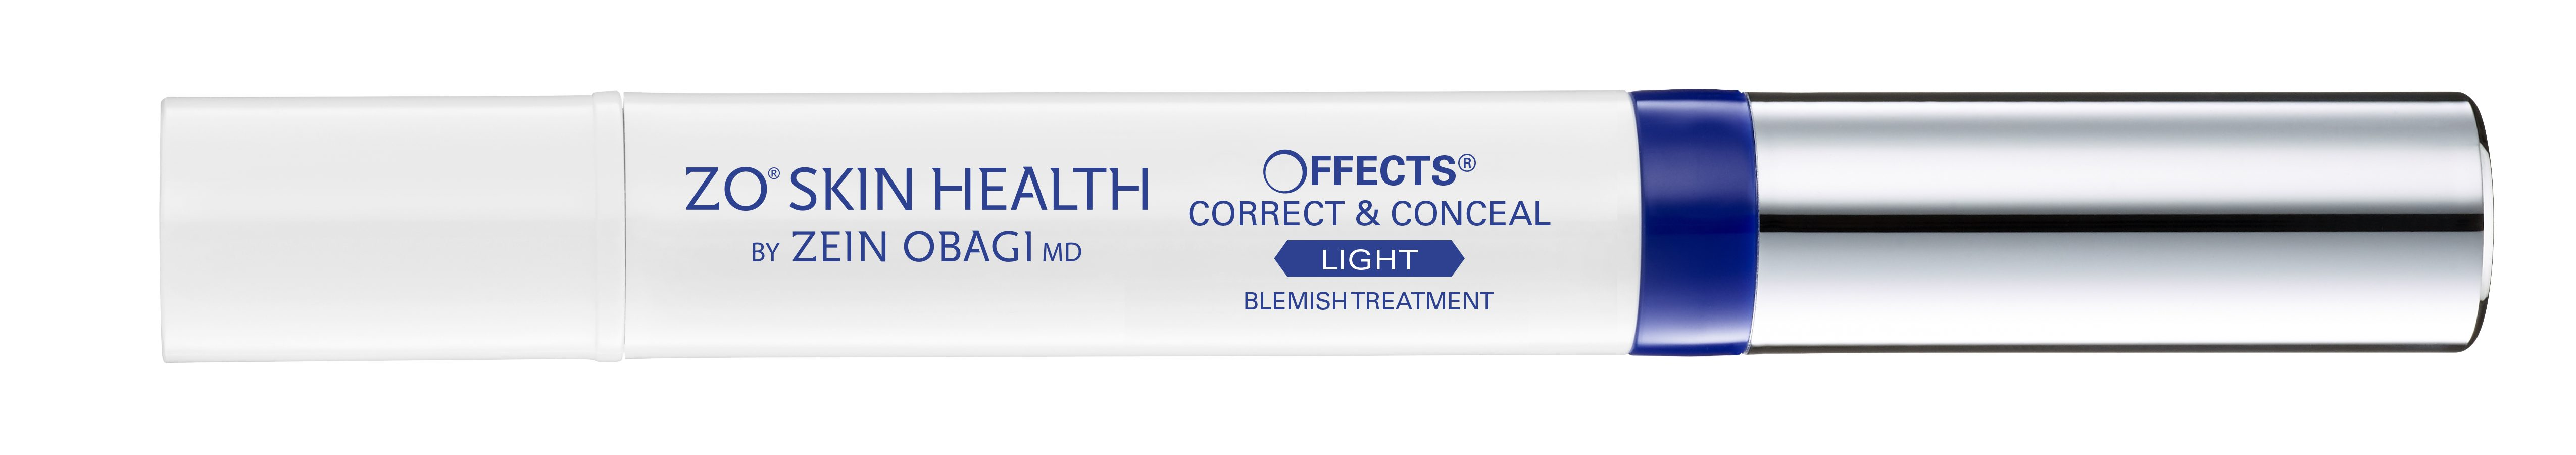 ZO_Skin_Health_Offects_Correct_Conceal_closed_DKK385